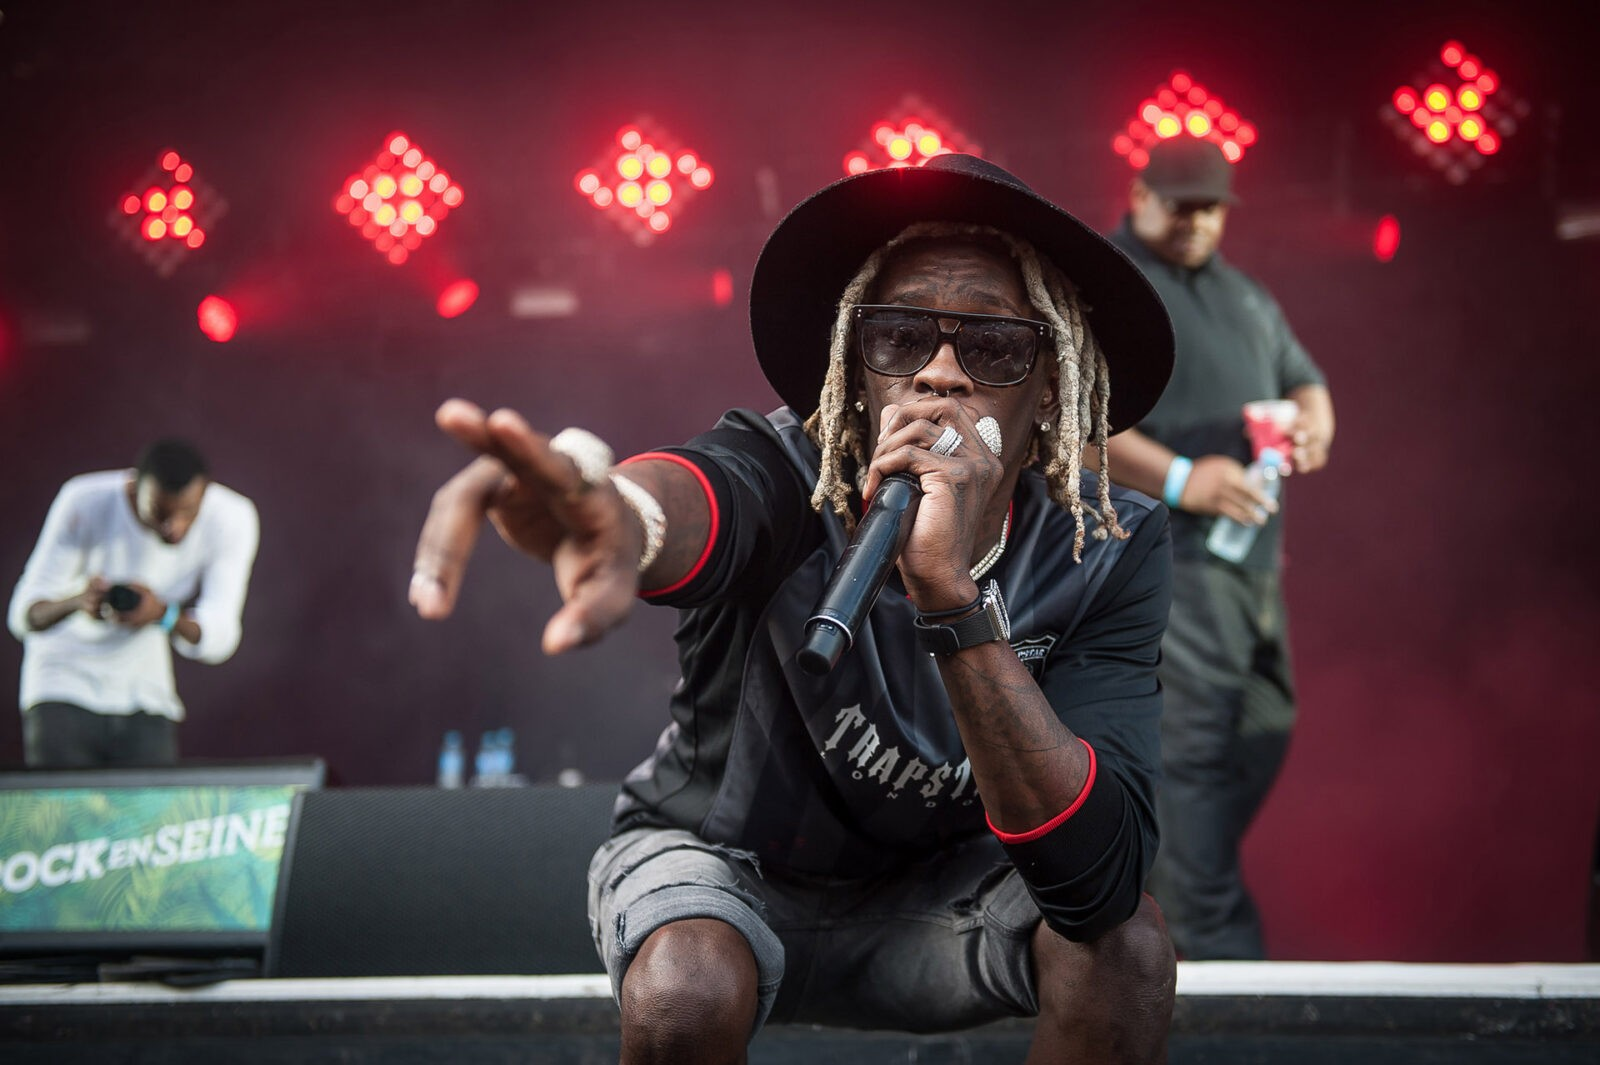 Animated Wallpapers Hd 1080p 25 Young Thug Wallpapers Hd Free Download